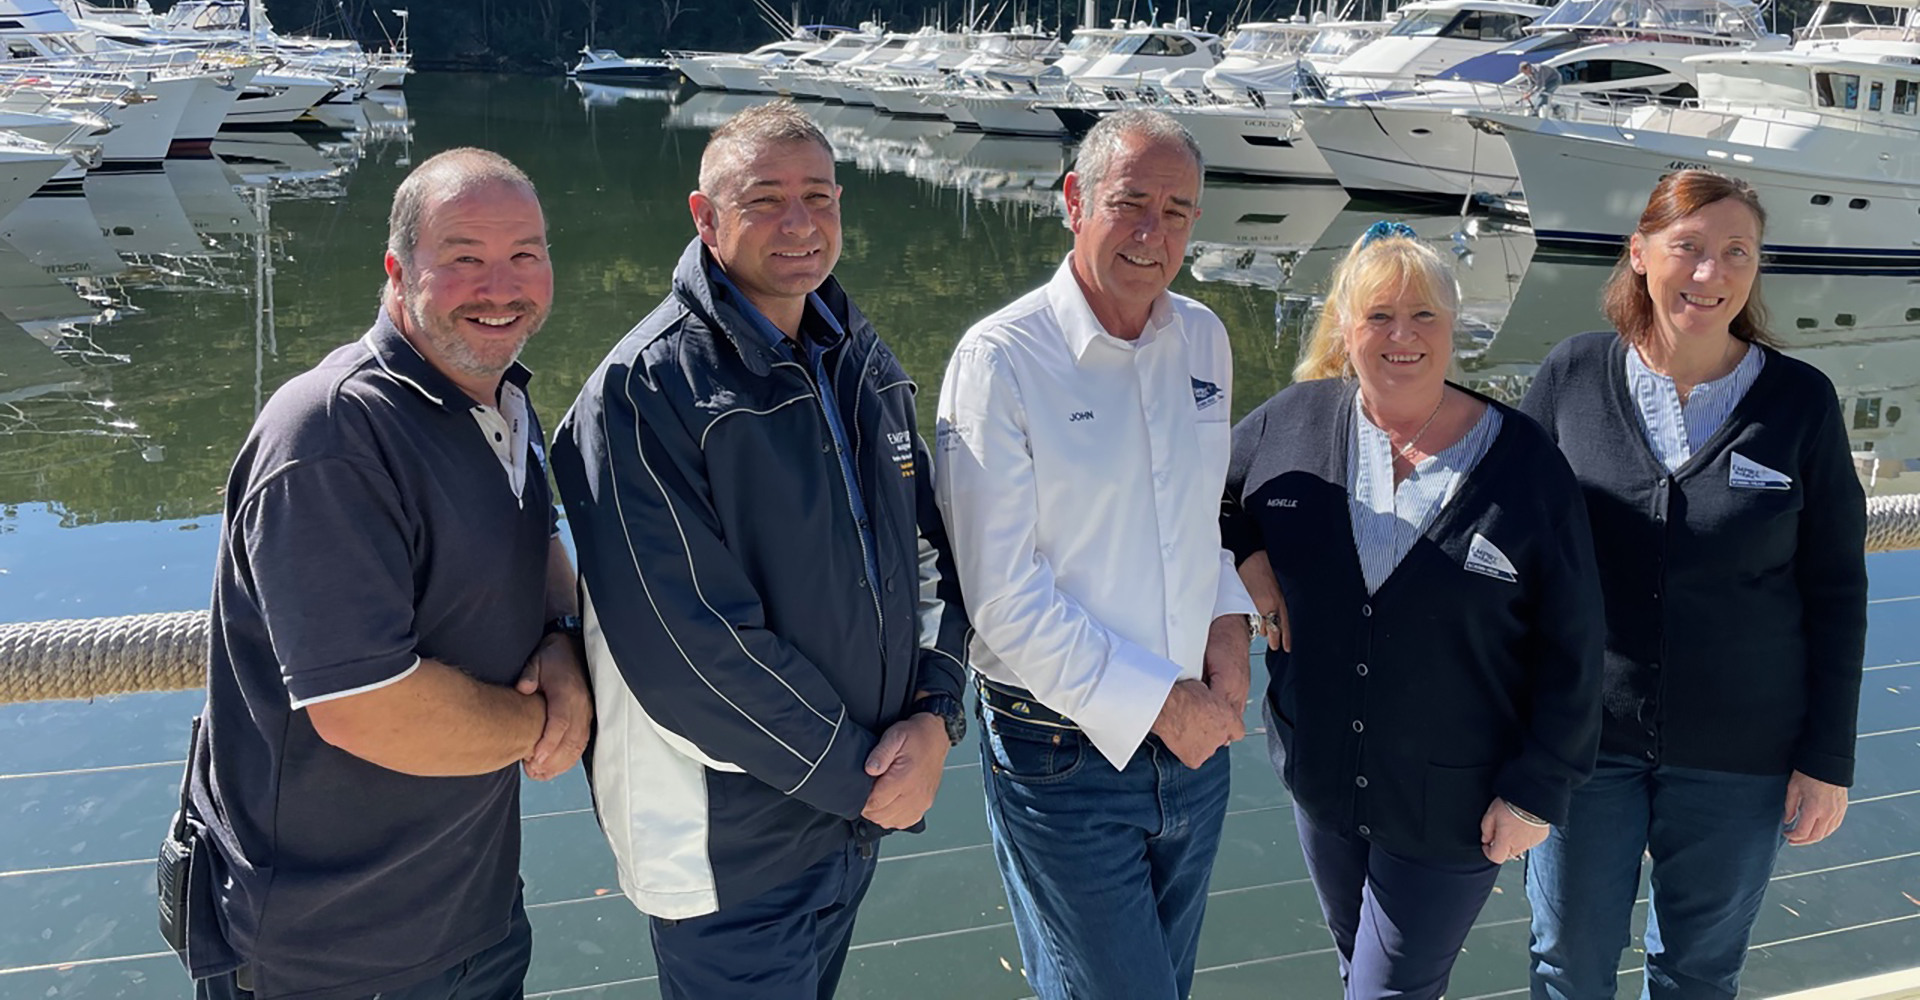 The Empire Marina team